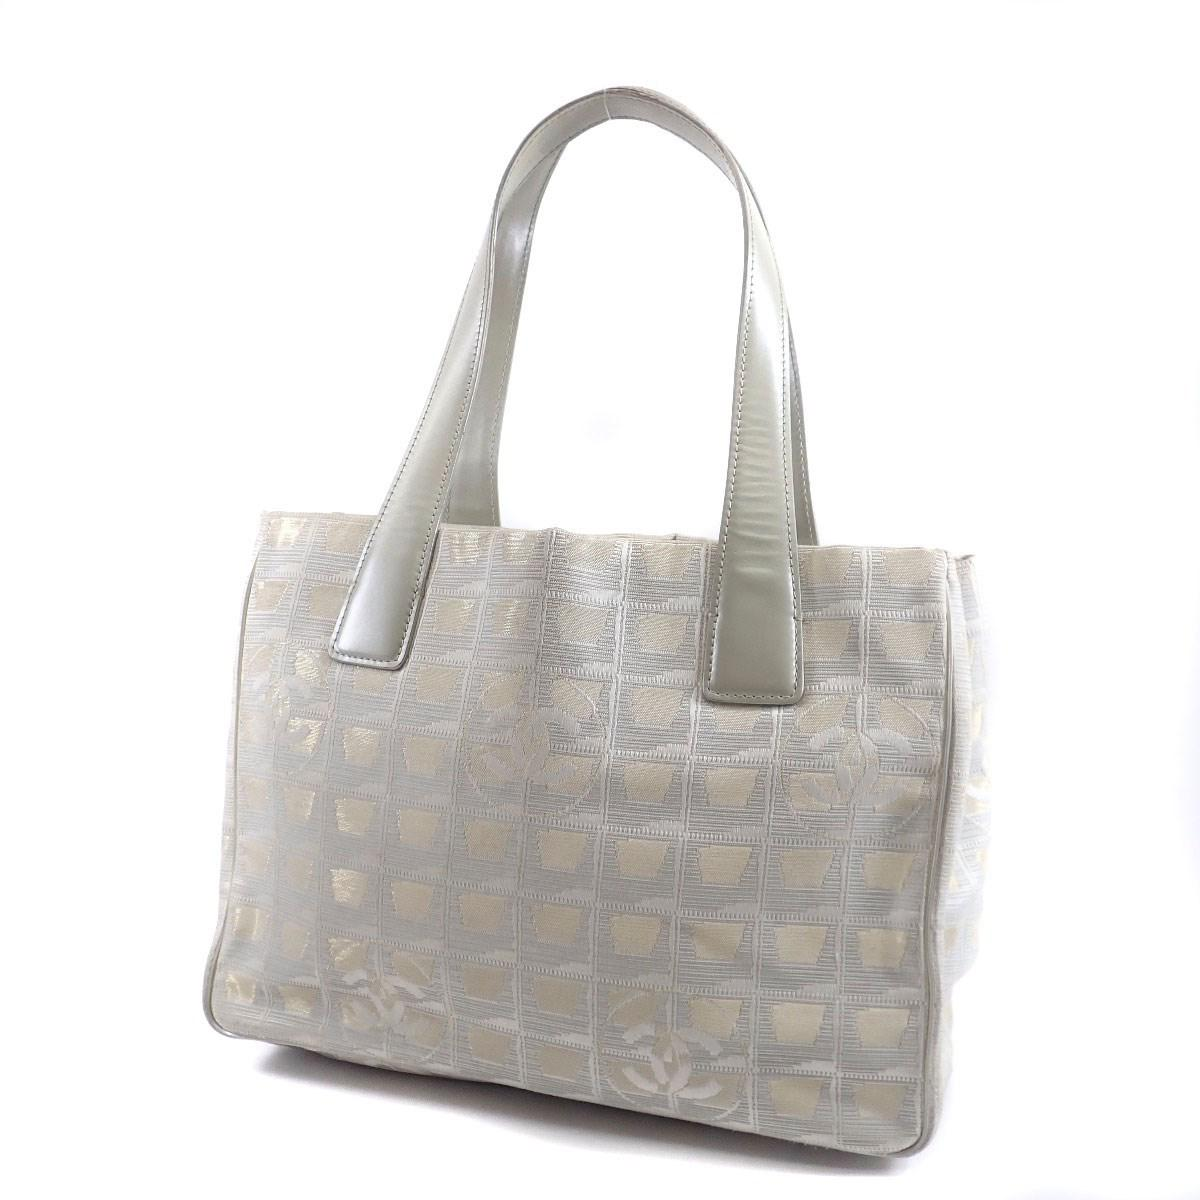 ec2493bf92c8 Lyst - Chanel Nylon Jacquard Tote Bag New Travel Line Pm in Gray